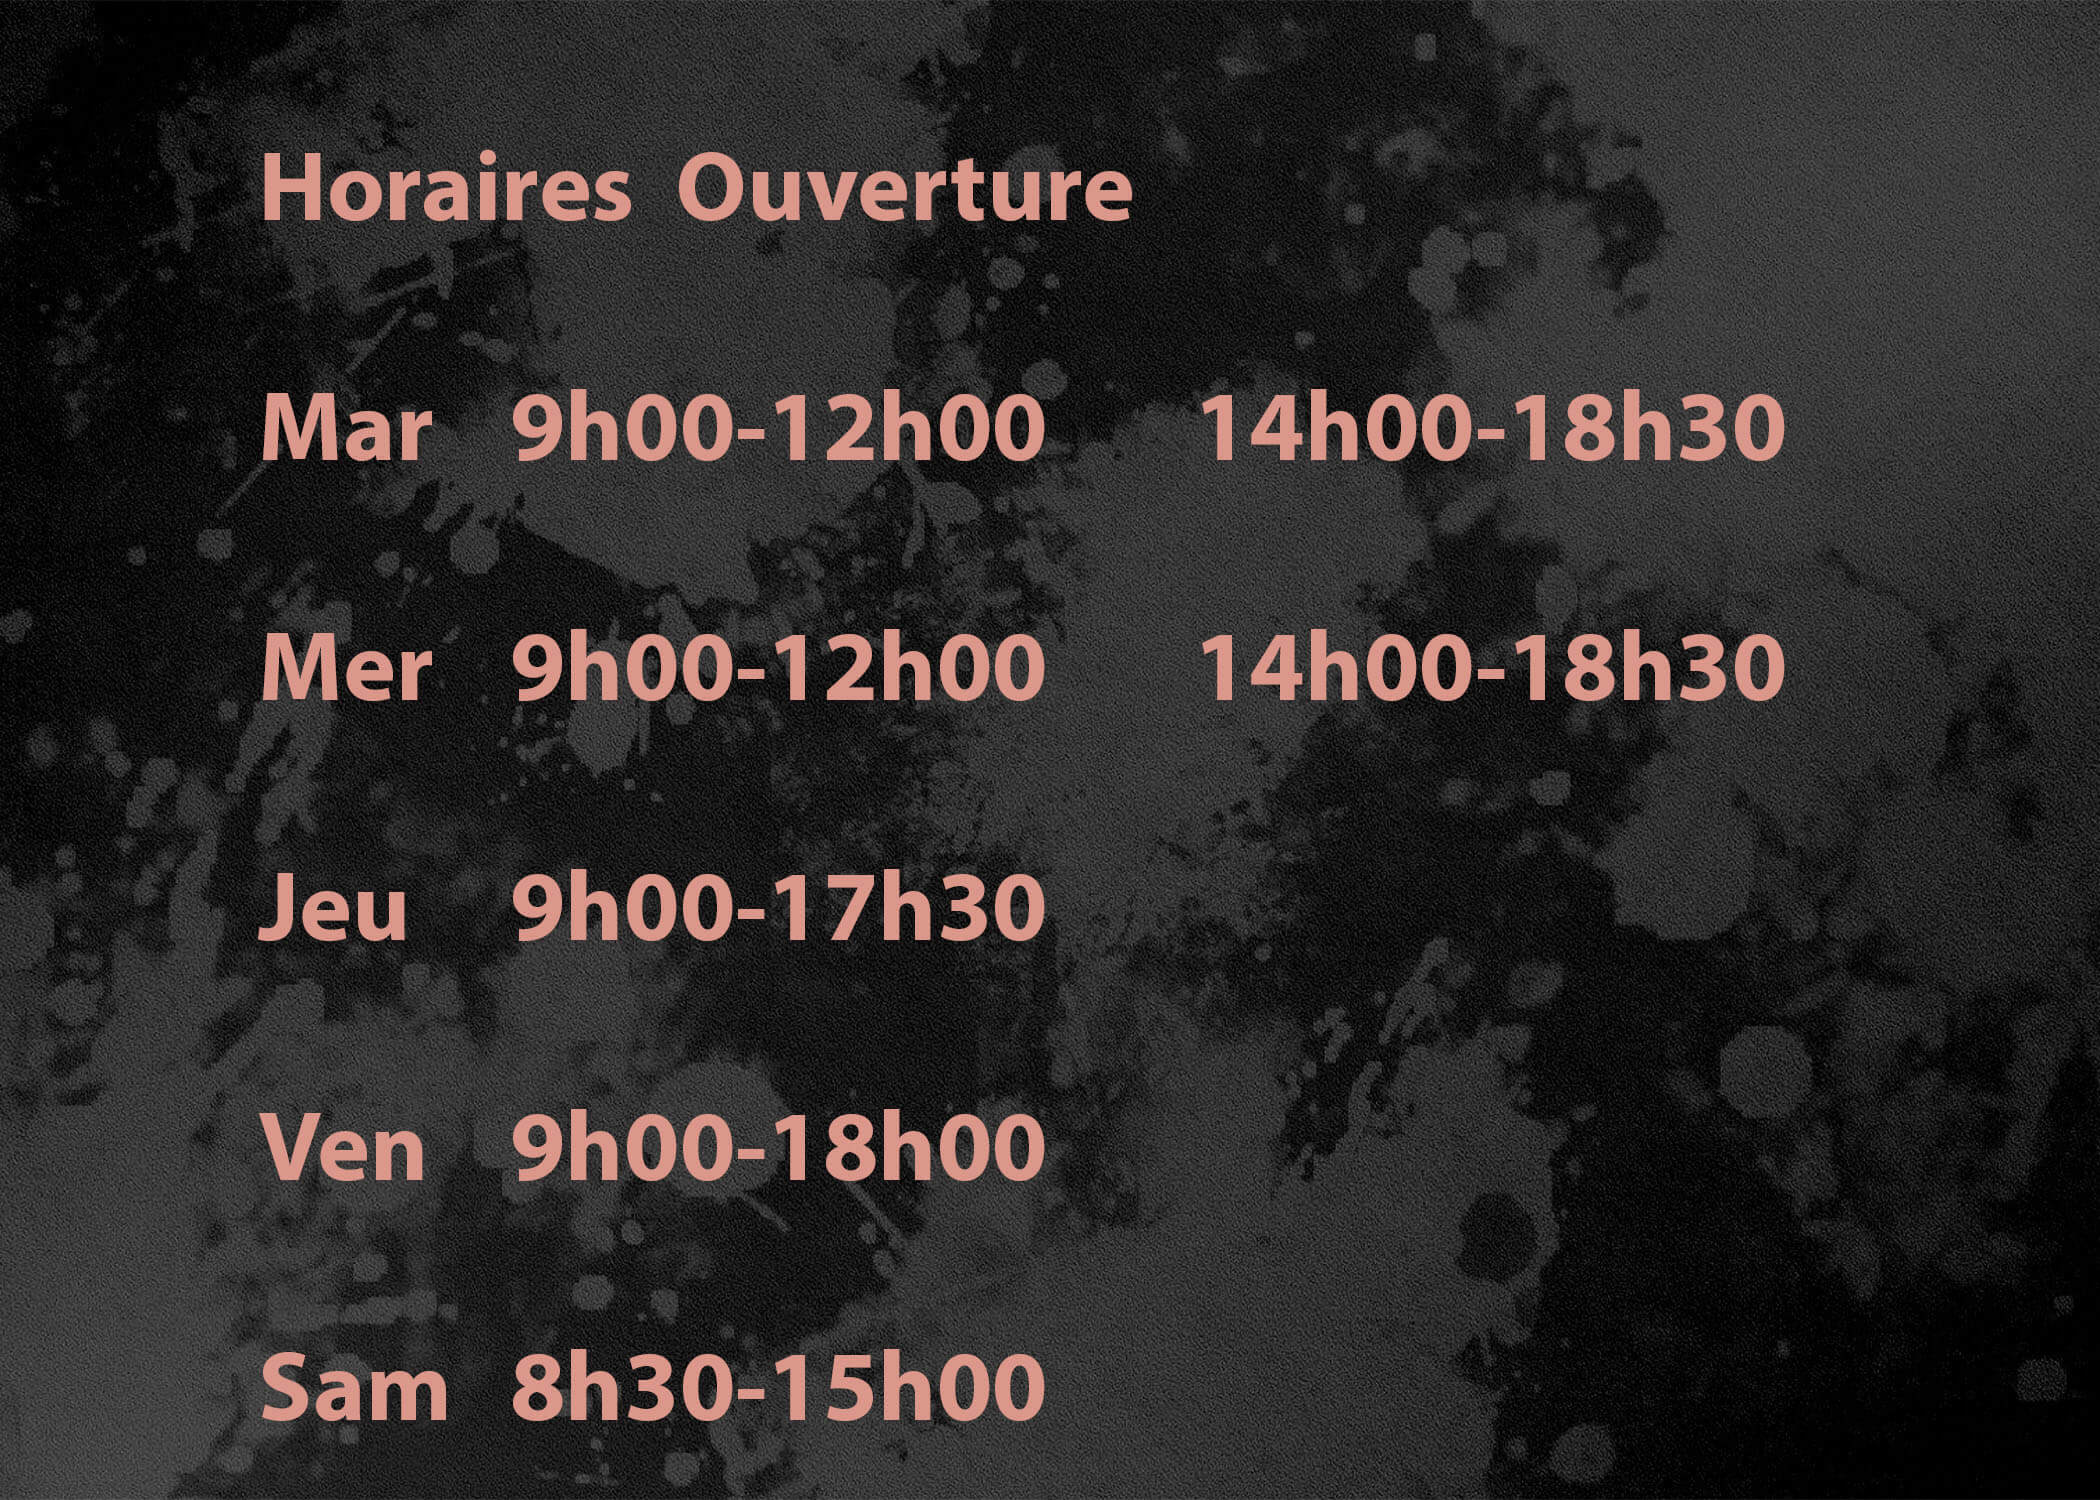 Coiff'Lyne Culoz horaires ouverture